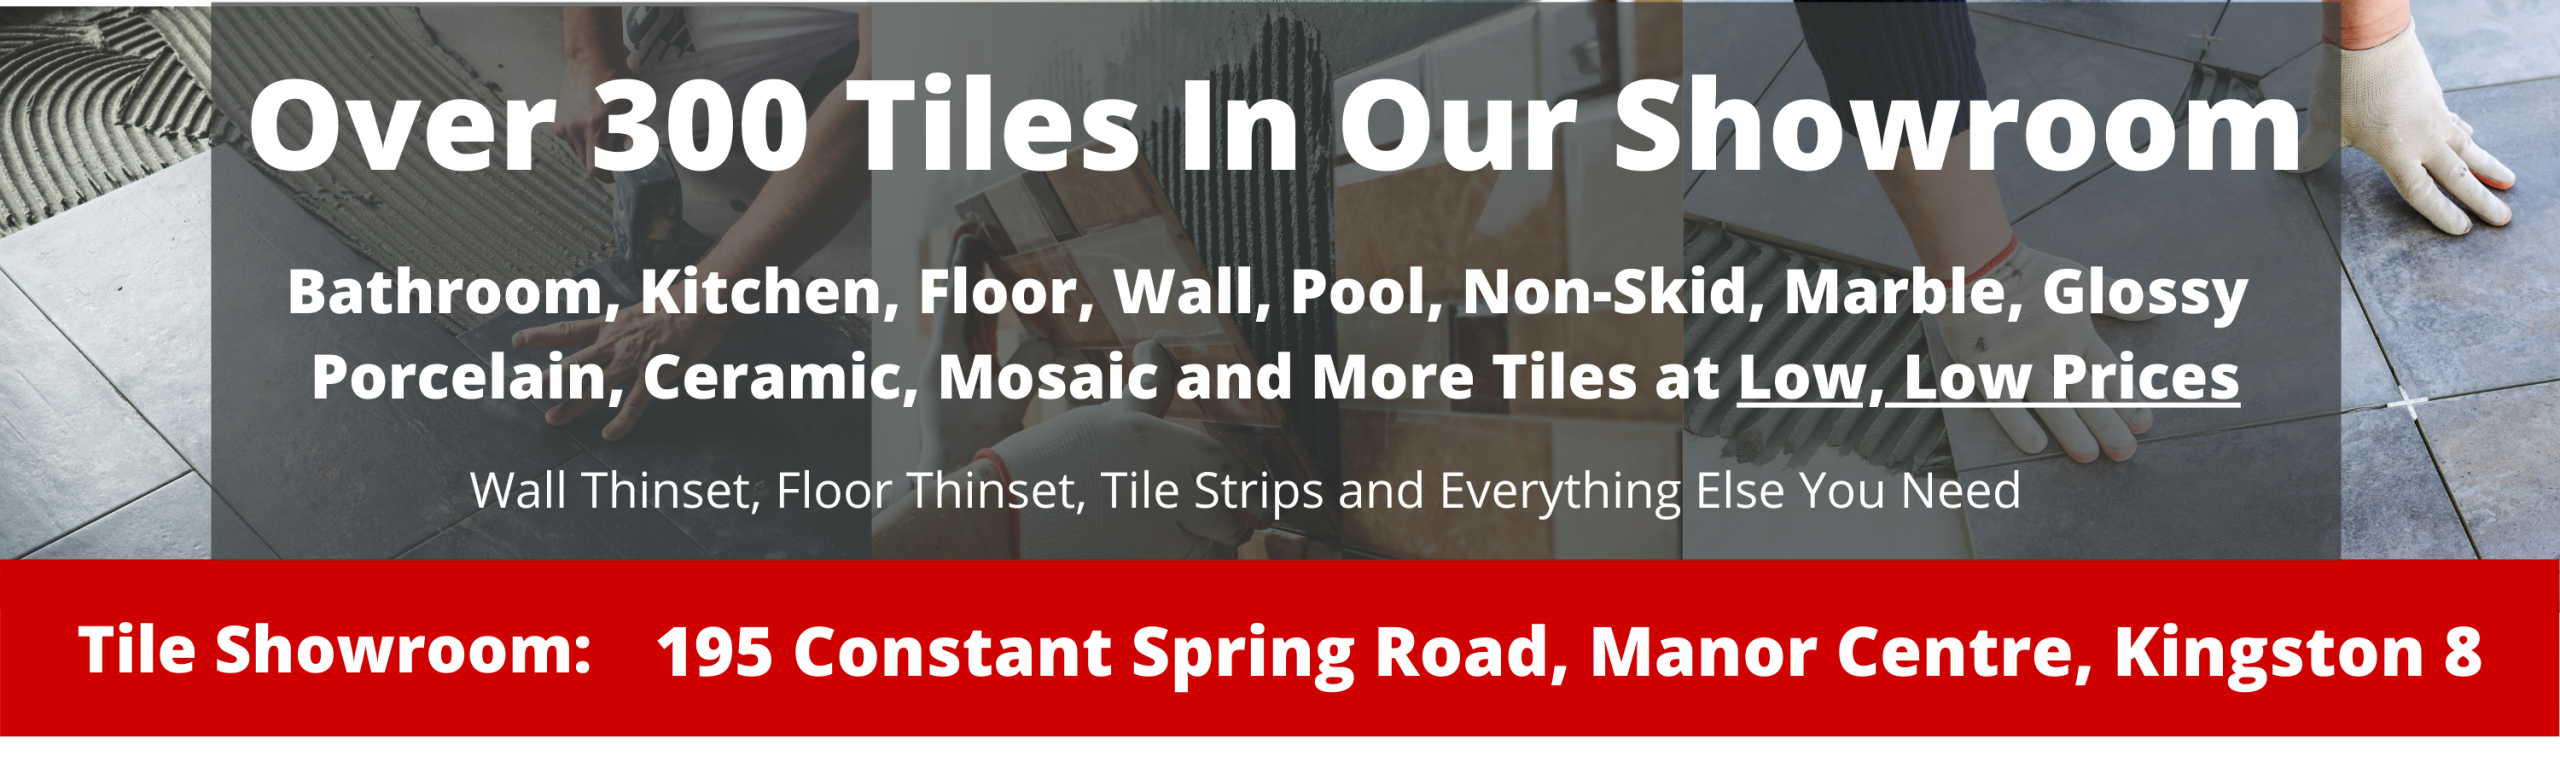 Bathroom Tiles, Kitchen Tiles, Wall, Pool, Floor, Non-Skid, Ceramic, Mosaic, Glossy and More Tiles available in our Tile Showroom at 195 Constant Spring Road, Kingston 8